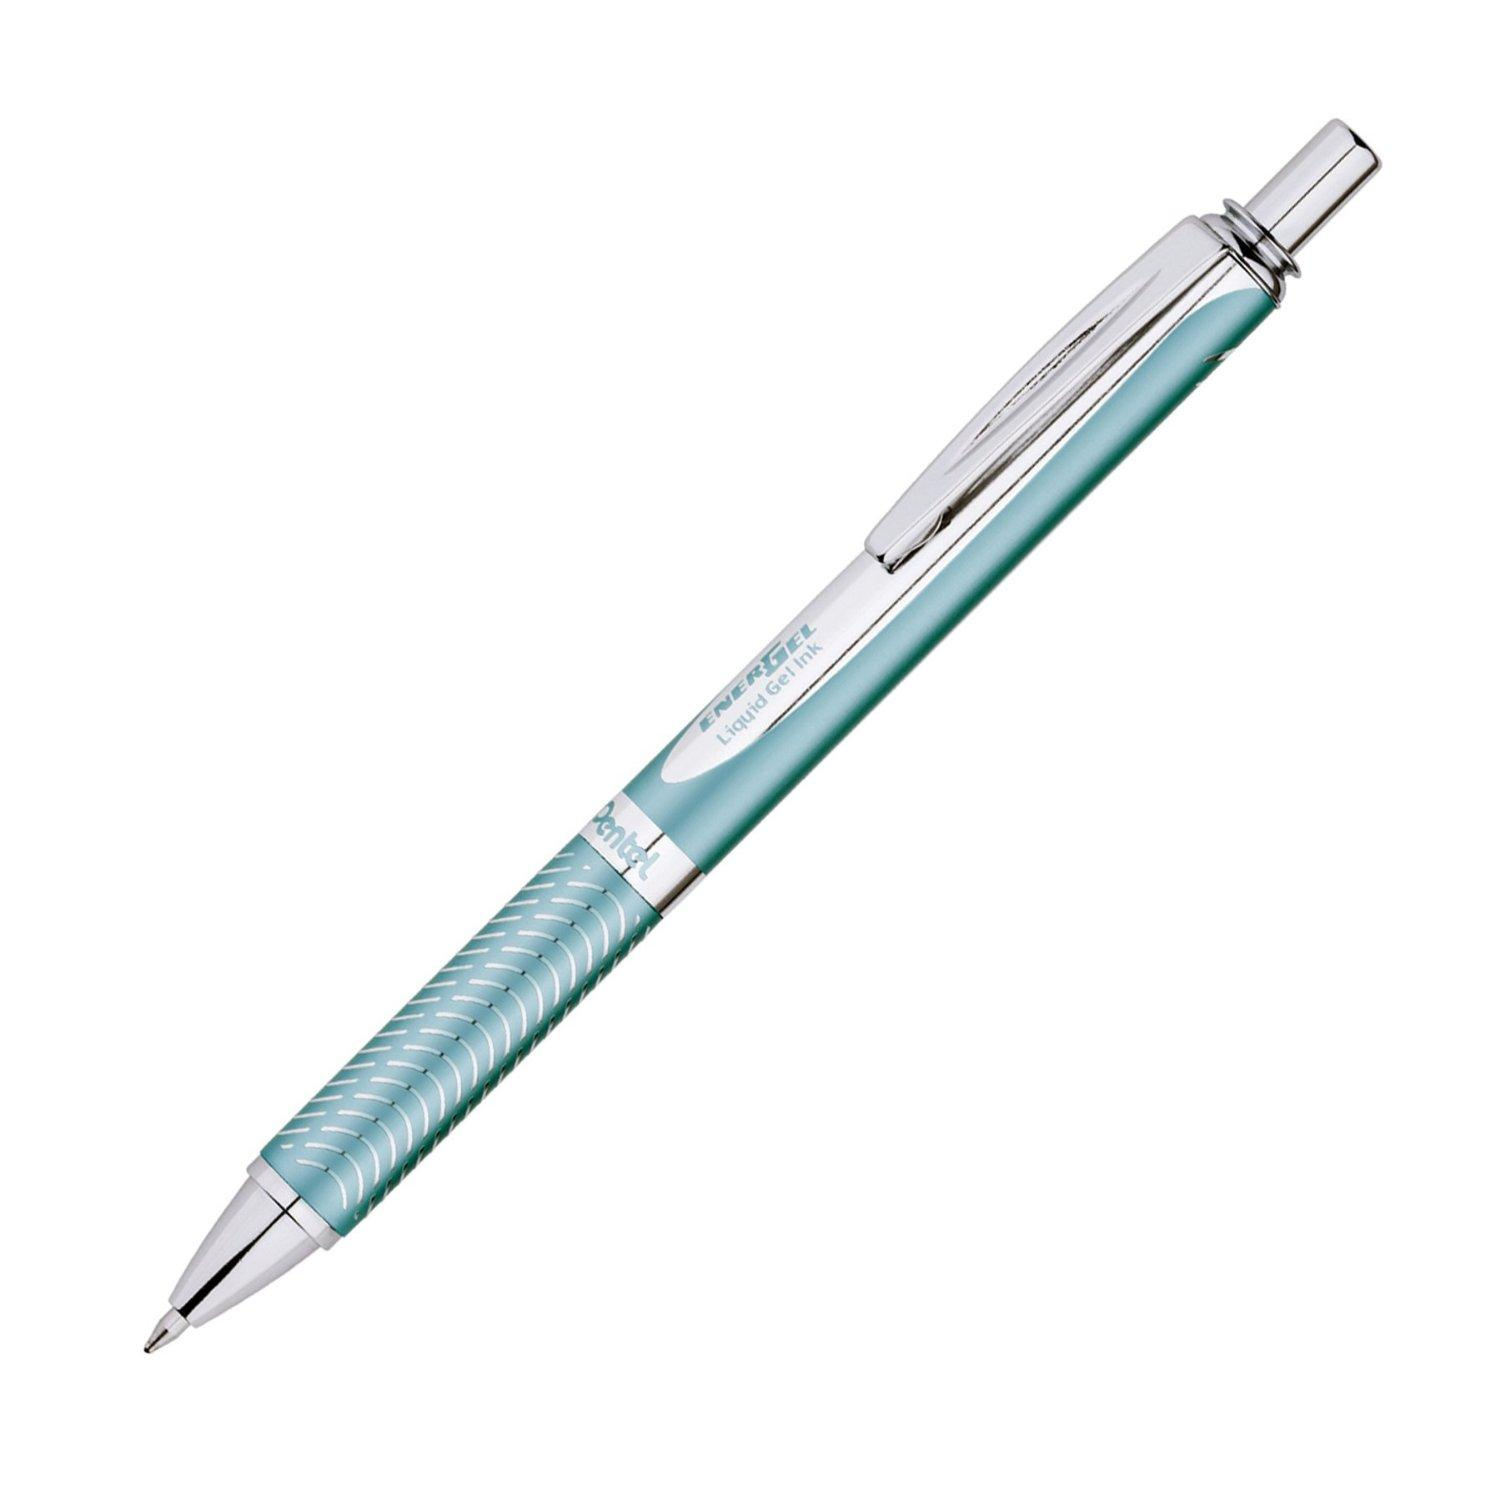 Pentel EnerGel Alloy RT Premium Liquid Gel Pen 0.7mm